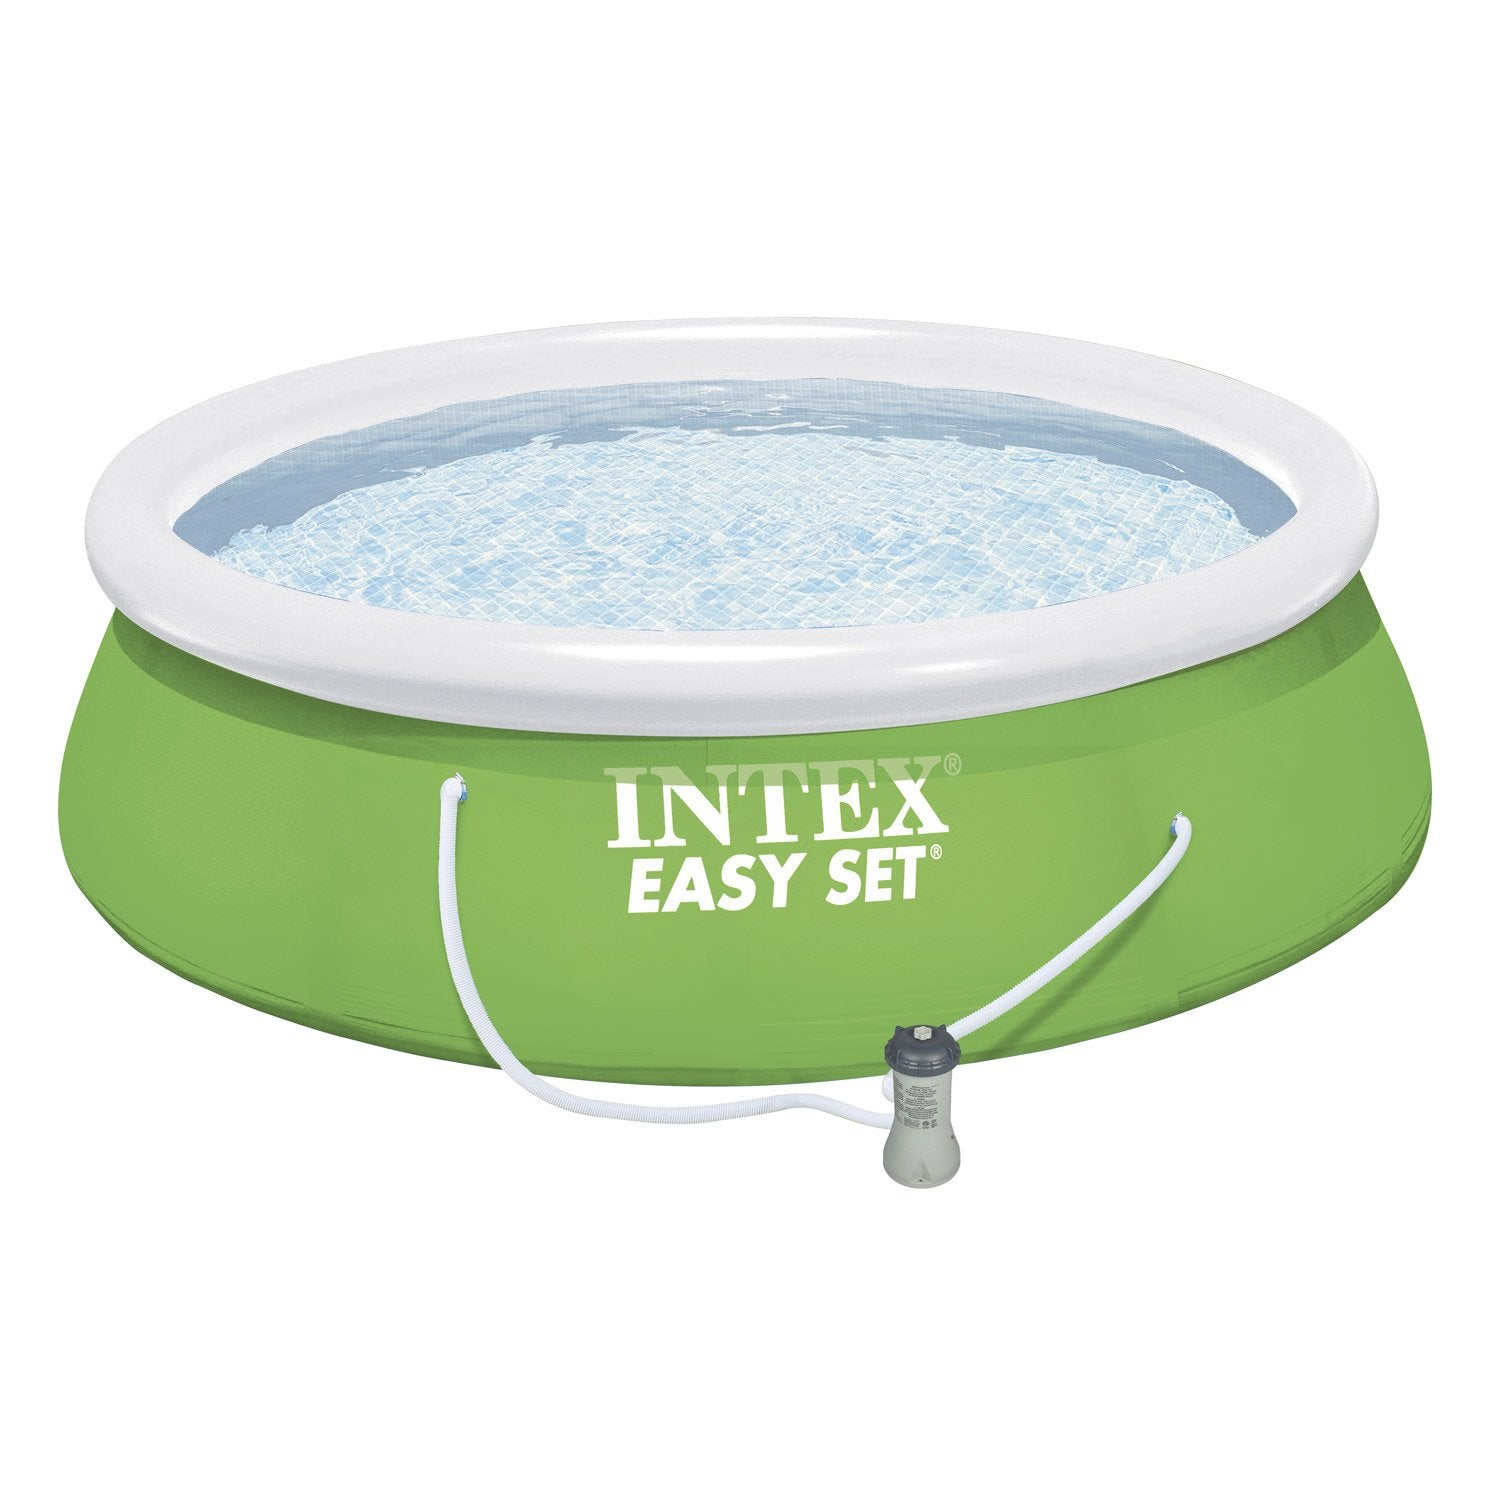 Piscine hors sol autoportante gonflable suppression intex for Piscine hors sol legislation